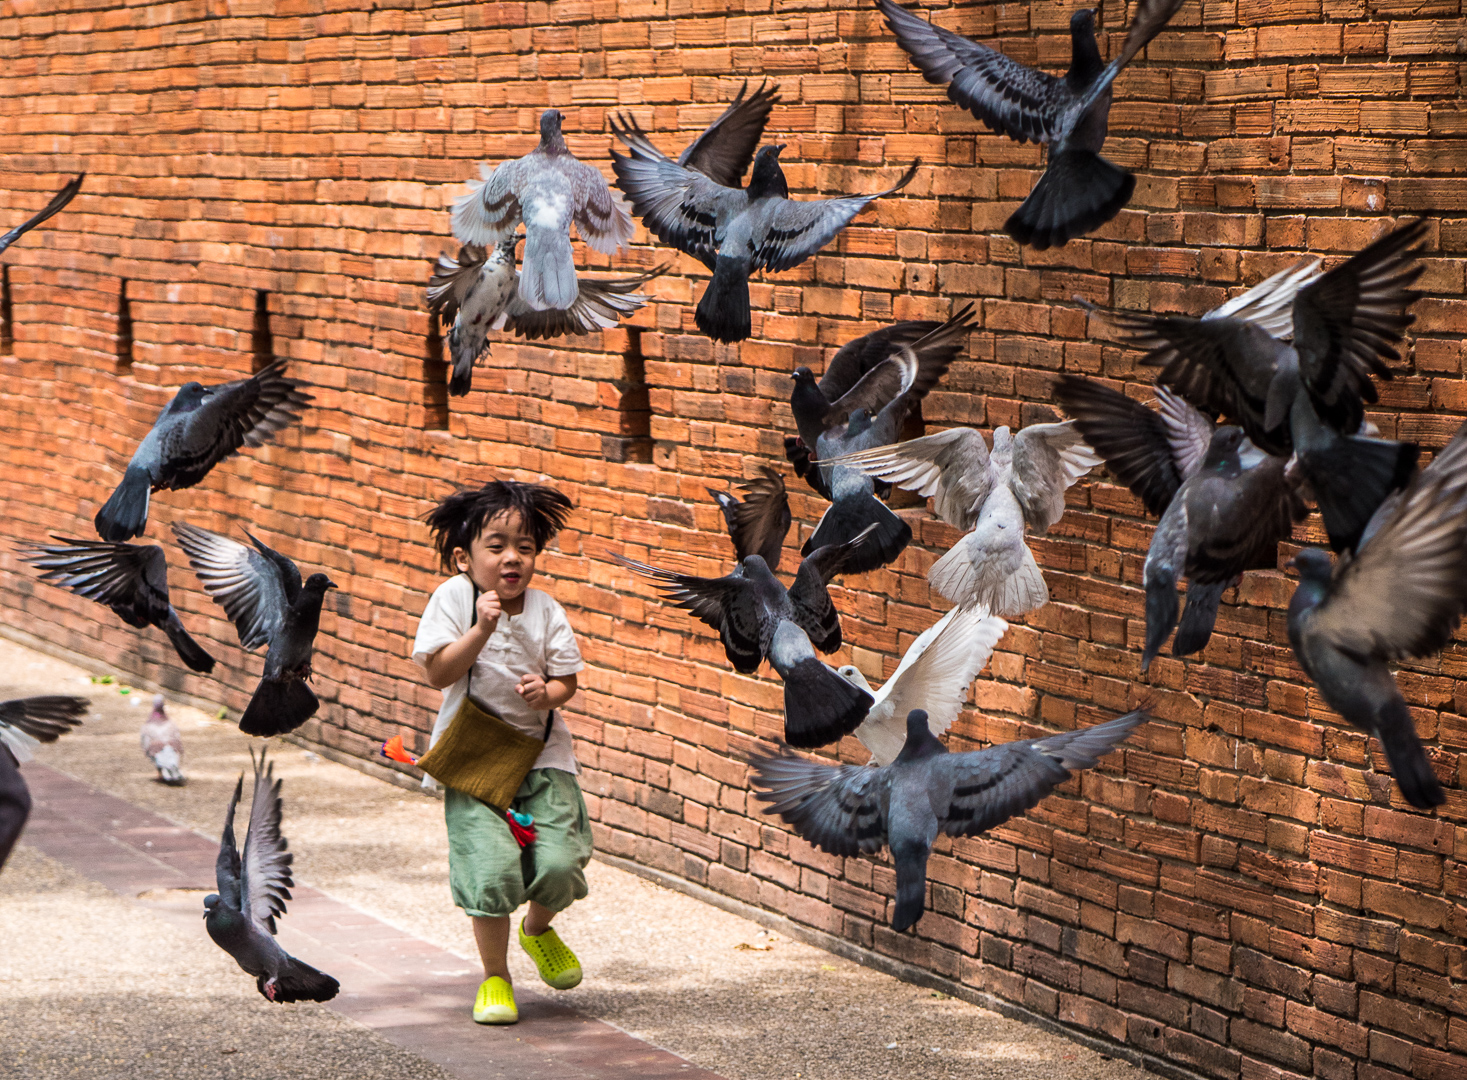 Scattering the Pigeons